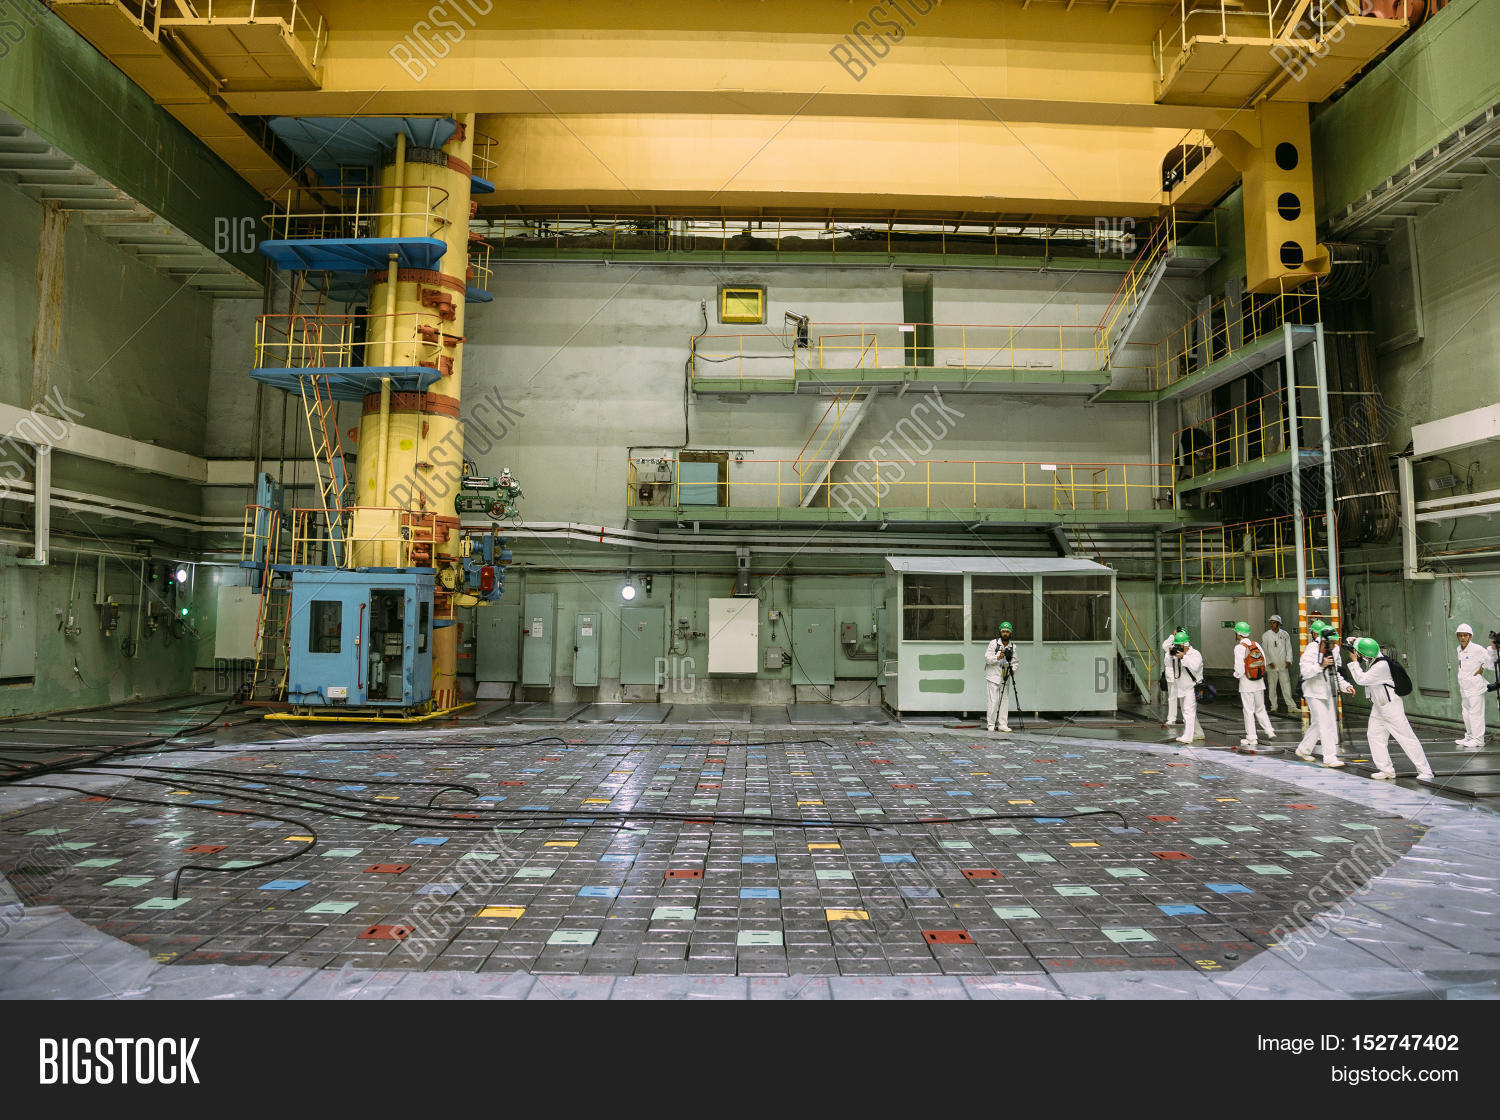 Inside Reactor Nuclear Image & Photo (Free Trial) | Bigstock